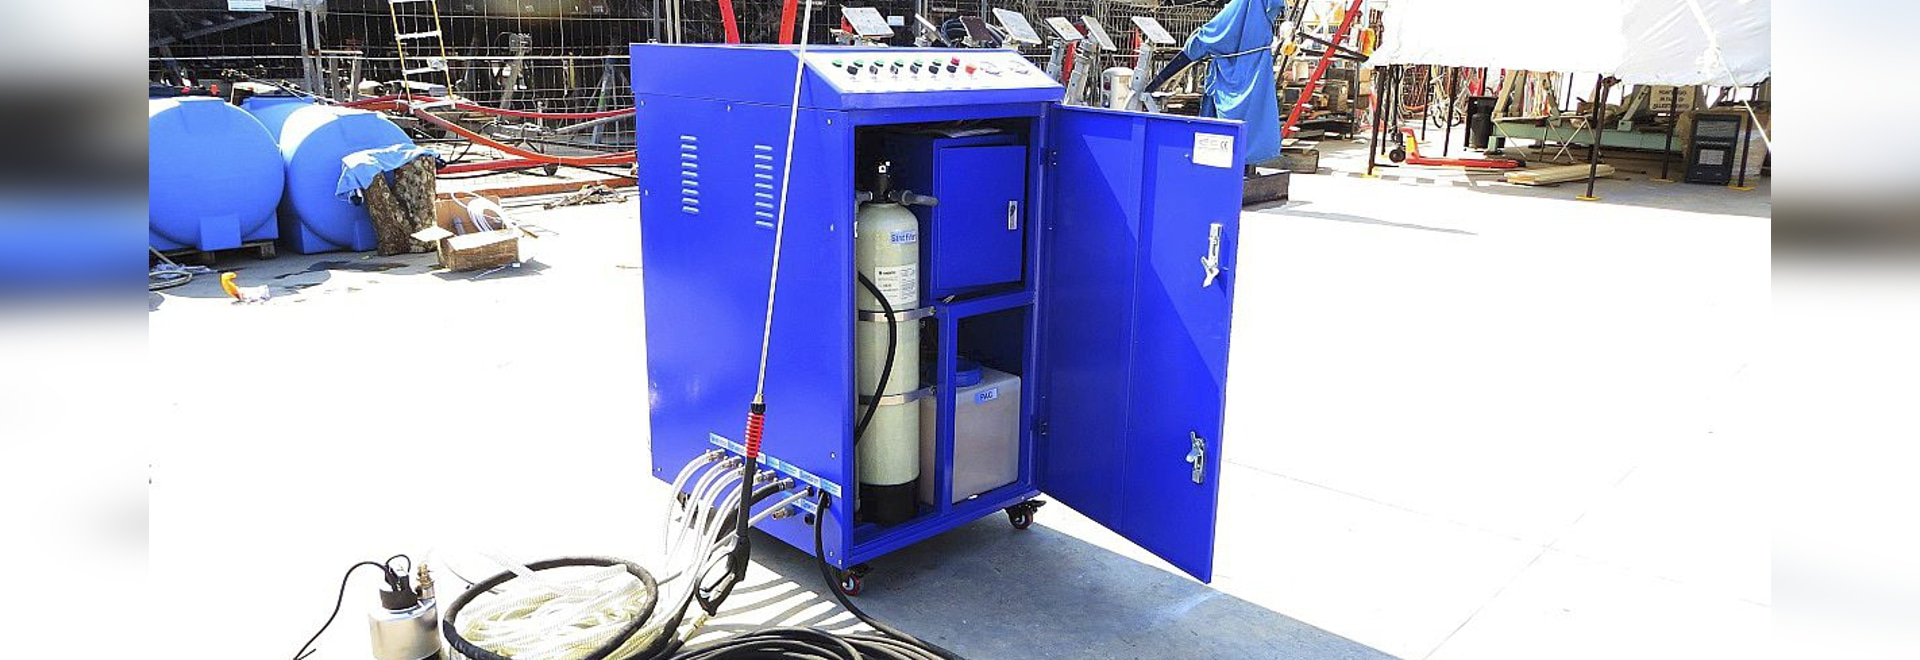 World First High Pressure washer with embedded water treatment plant.